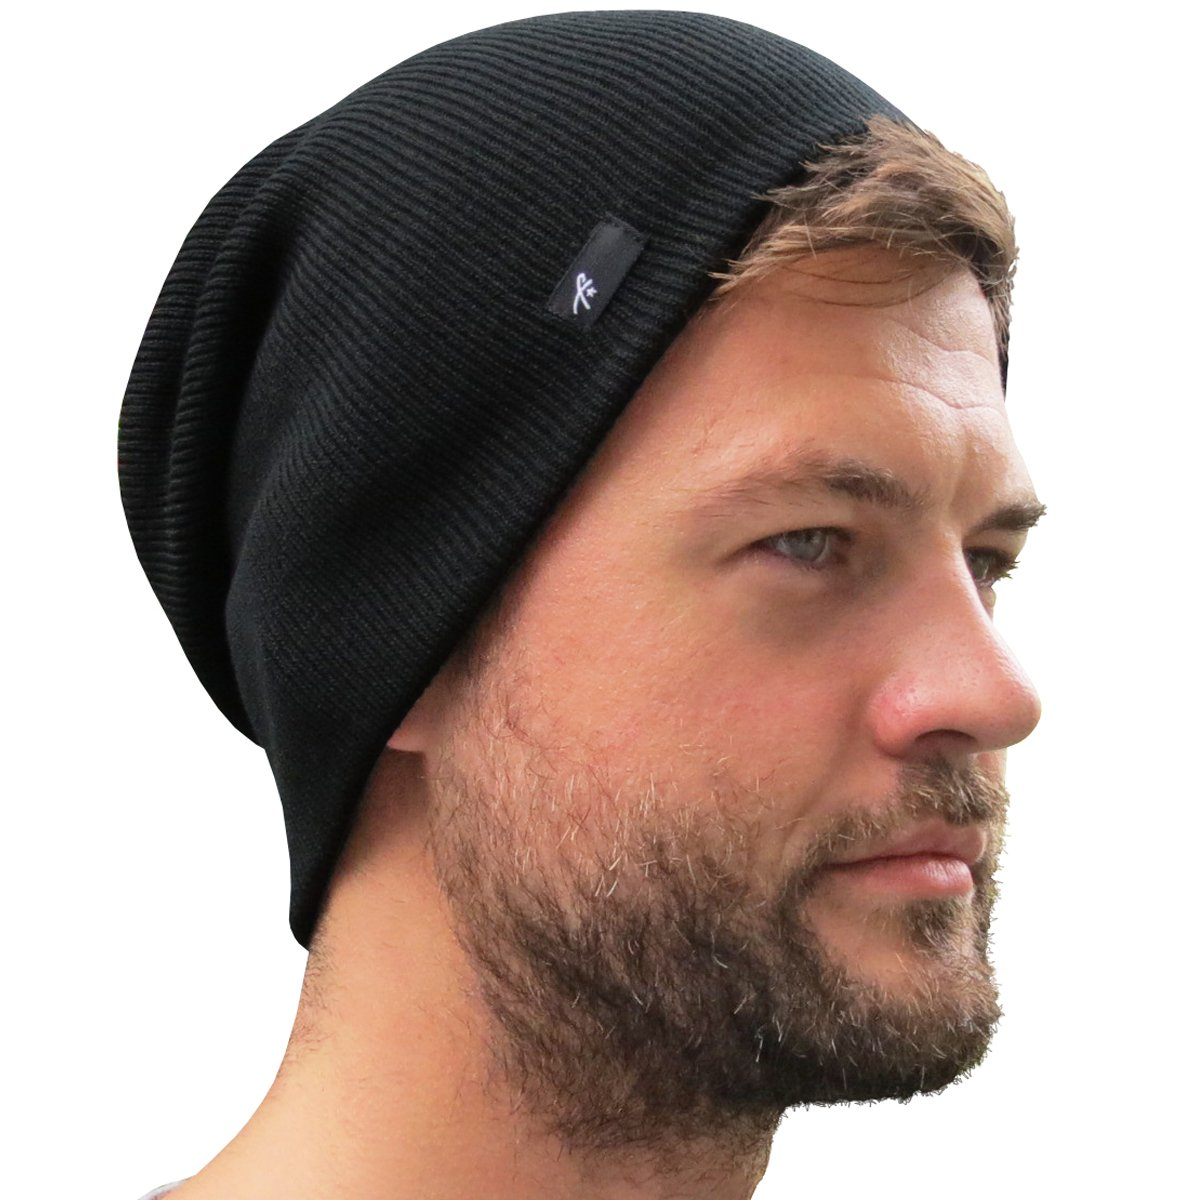 Slouch Beanie Hat for Men (Skull Cap) with Bonus Keychain (Many Colors)